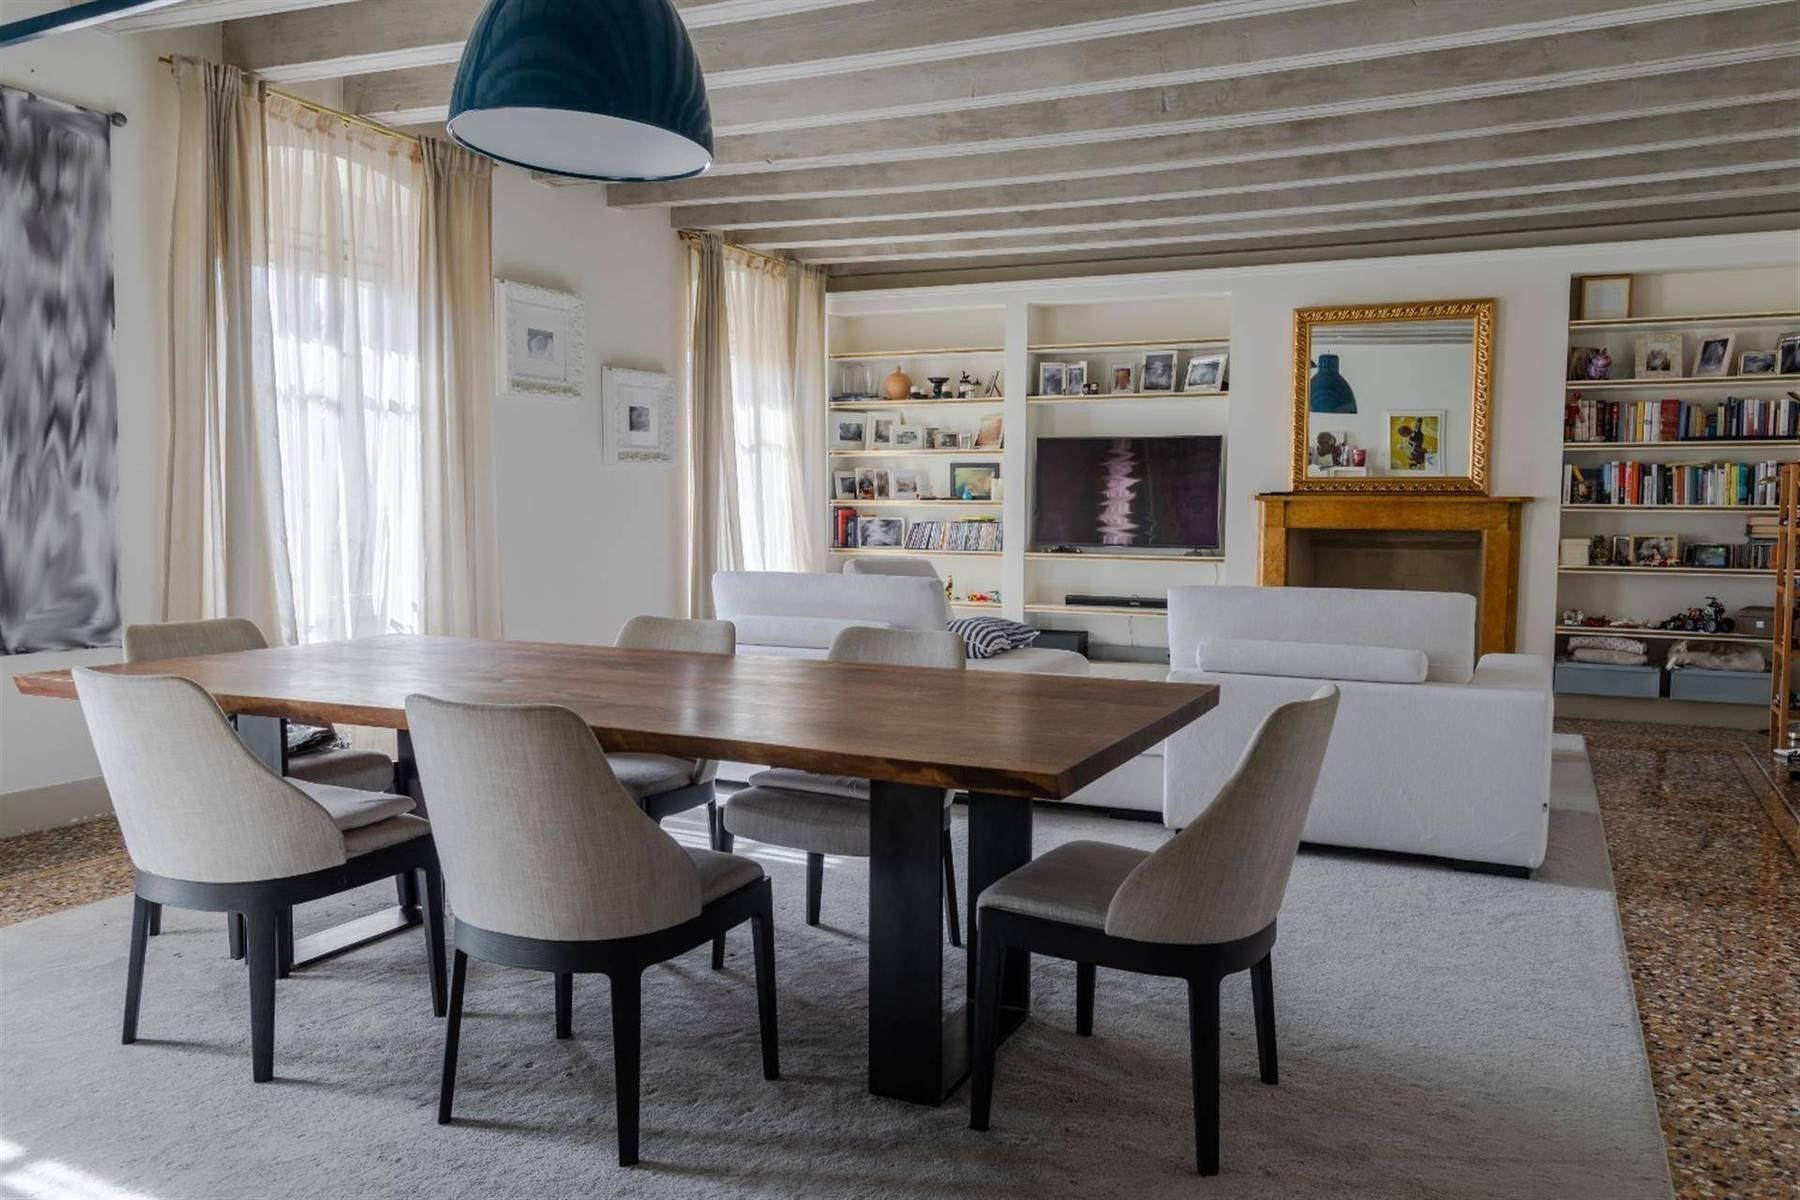 Elegant penthouse in the heart of Verona - 2